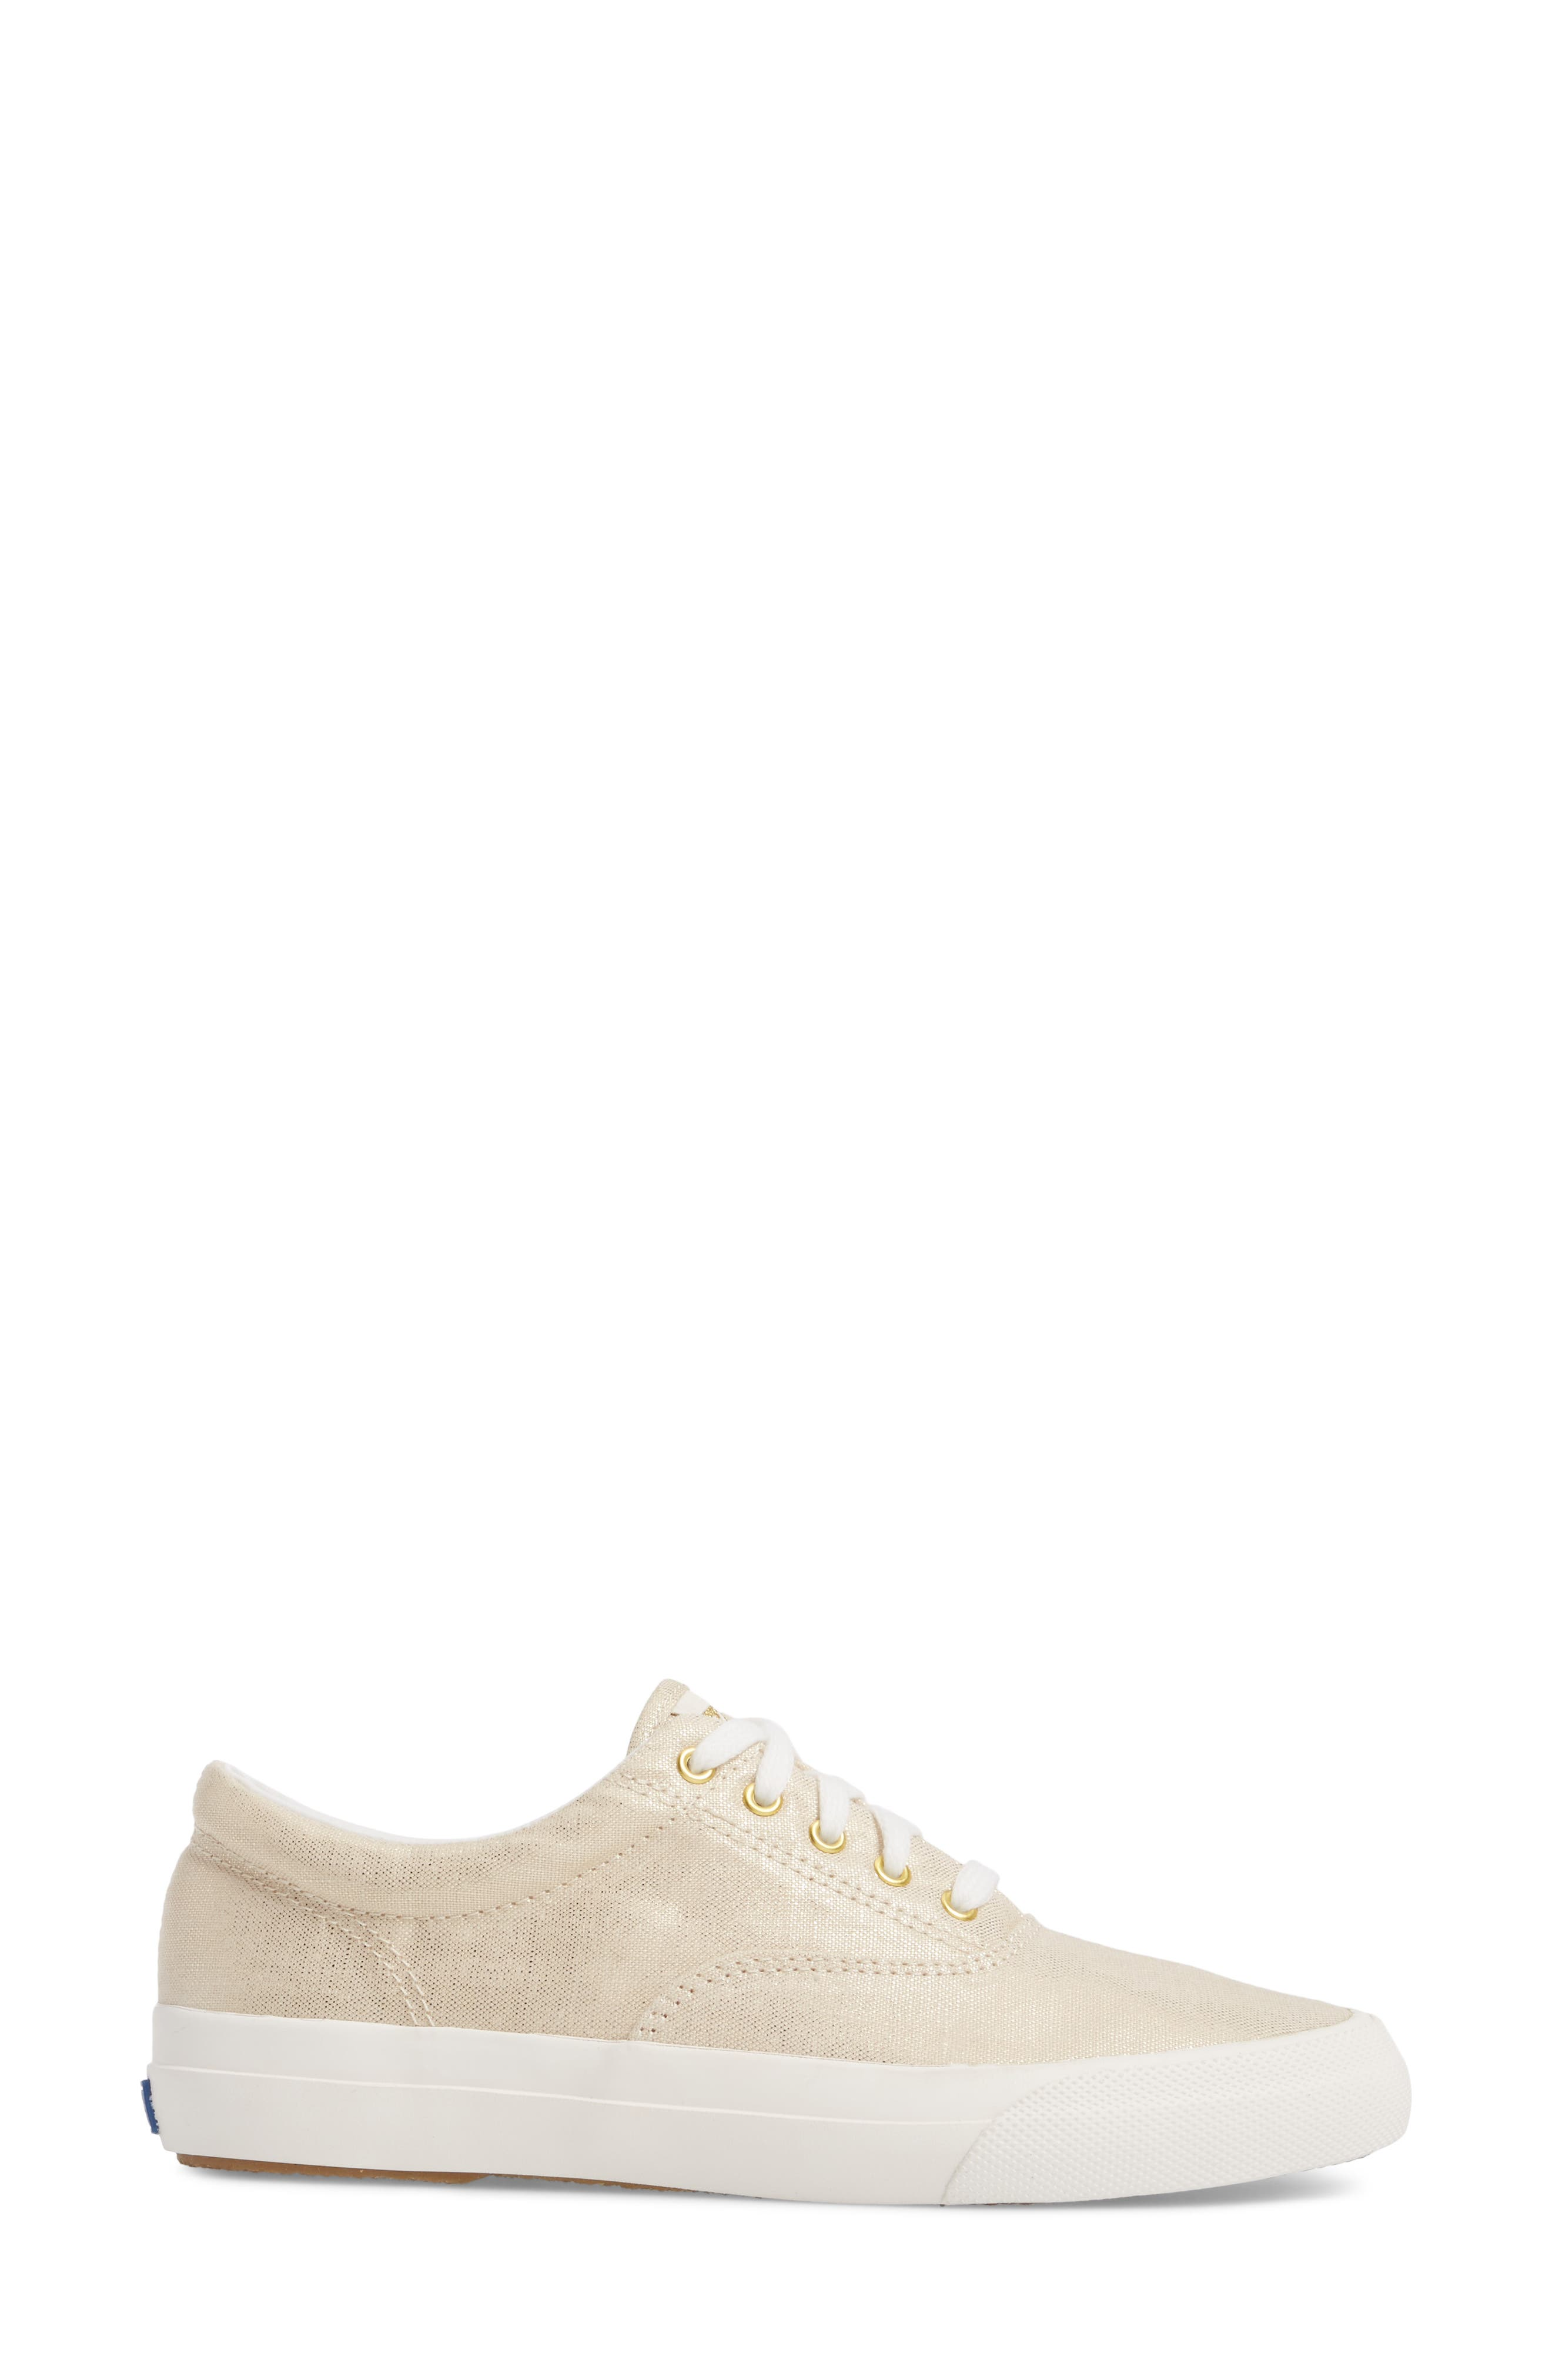 Anchor Metallic Linen Sneaker,                             Alternate thumbnail 3, color,                             710